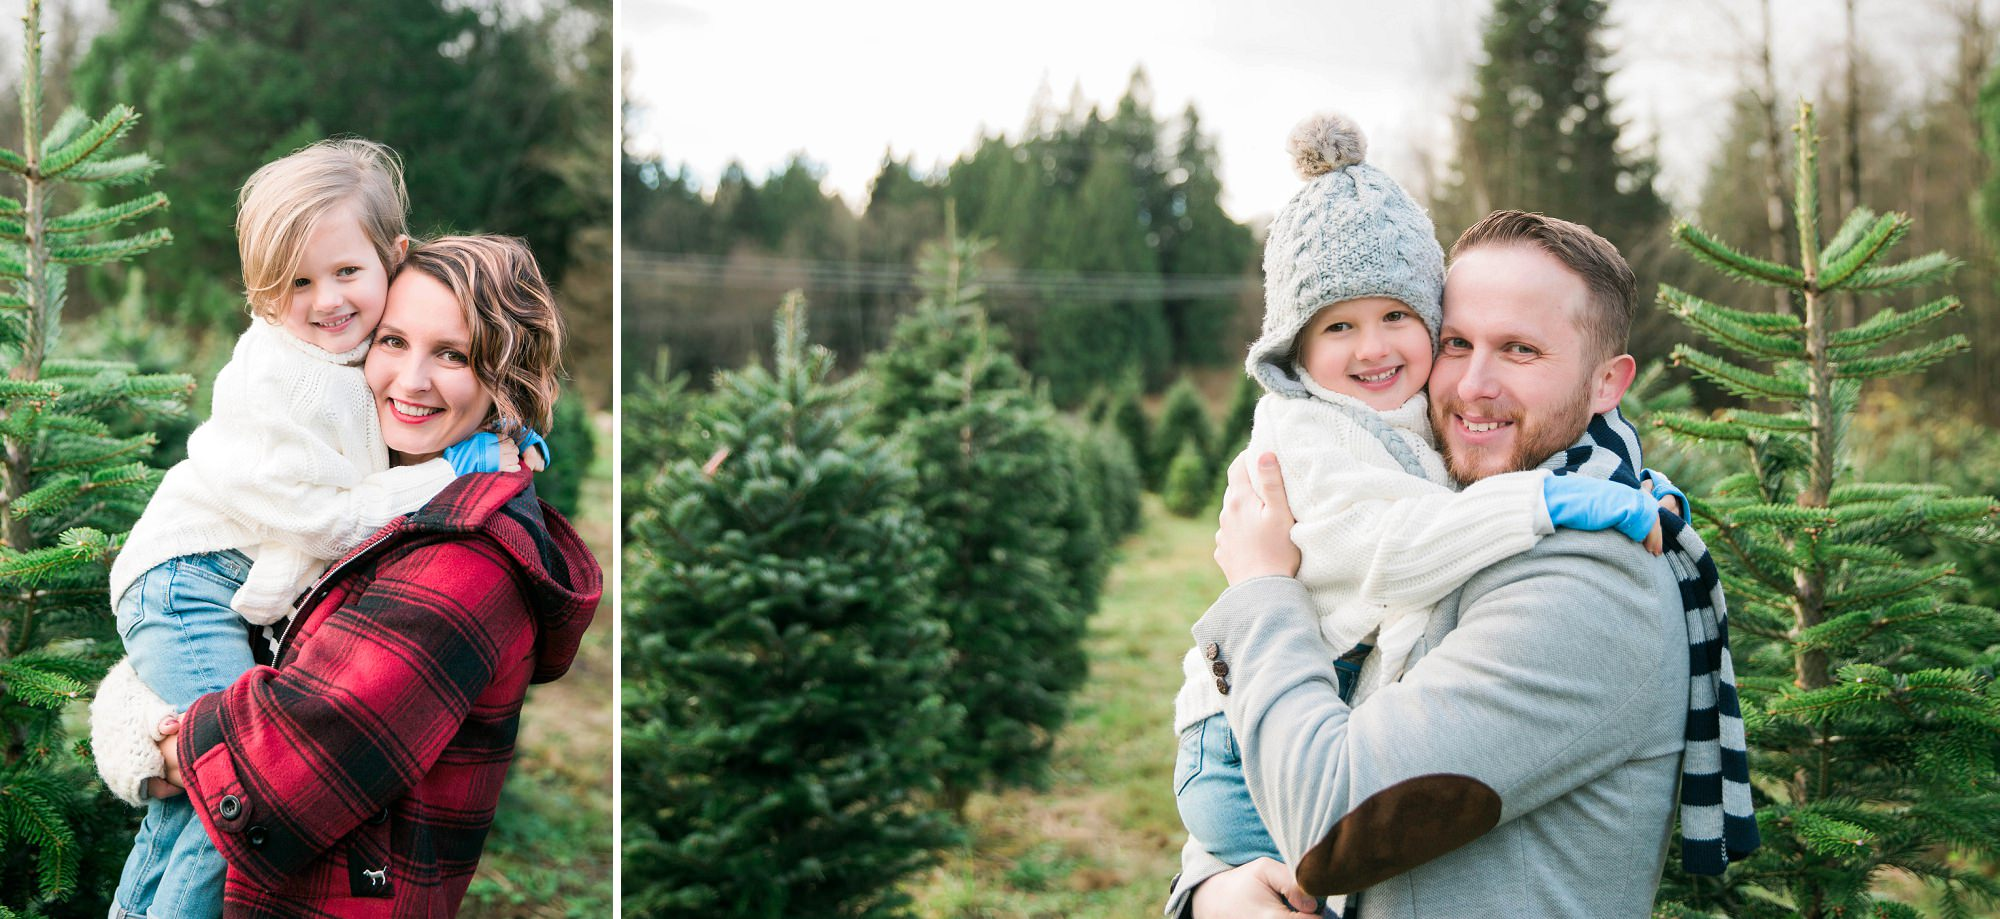 Pacific Northwest Family Adventure Photographer